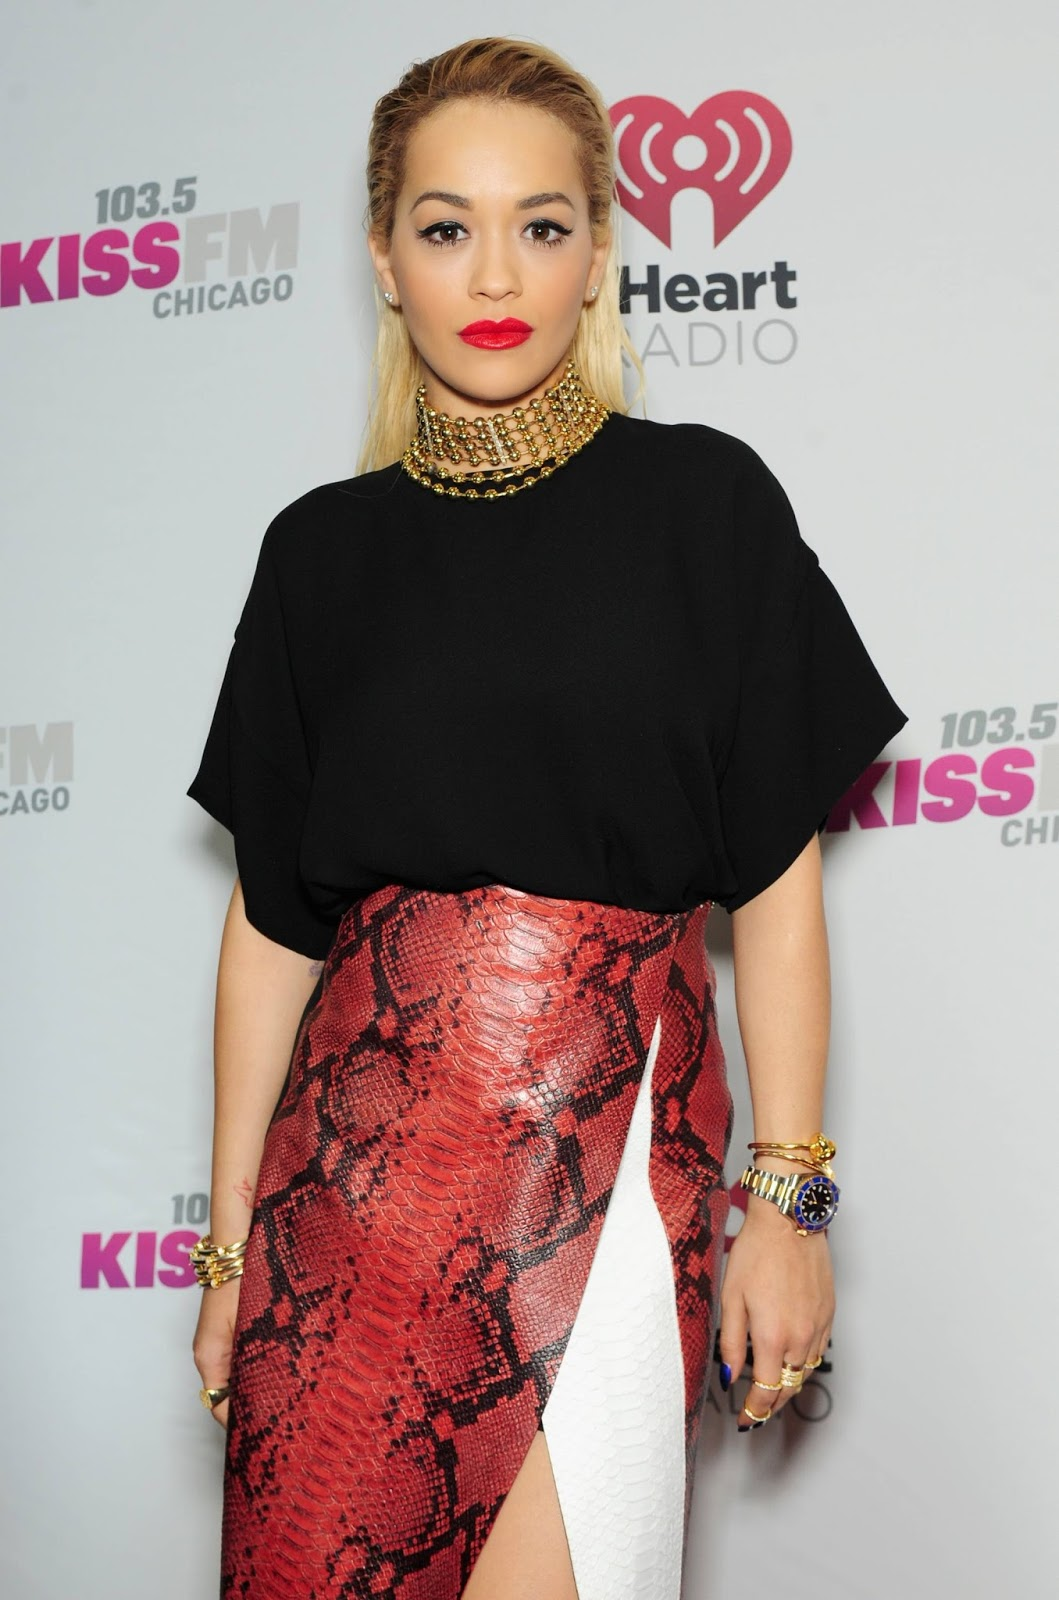 rita-ora-sportmax-103-5-kiss-fms-jingle-ball-2014